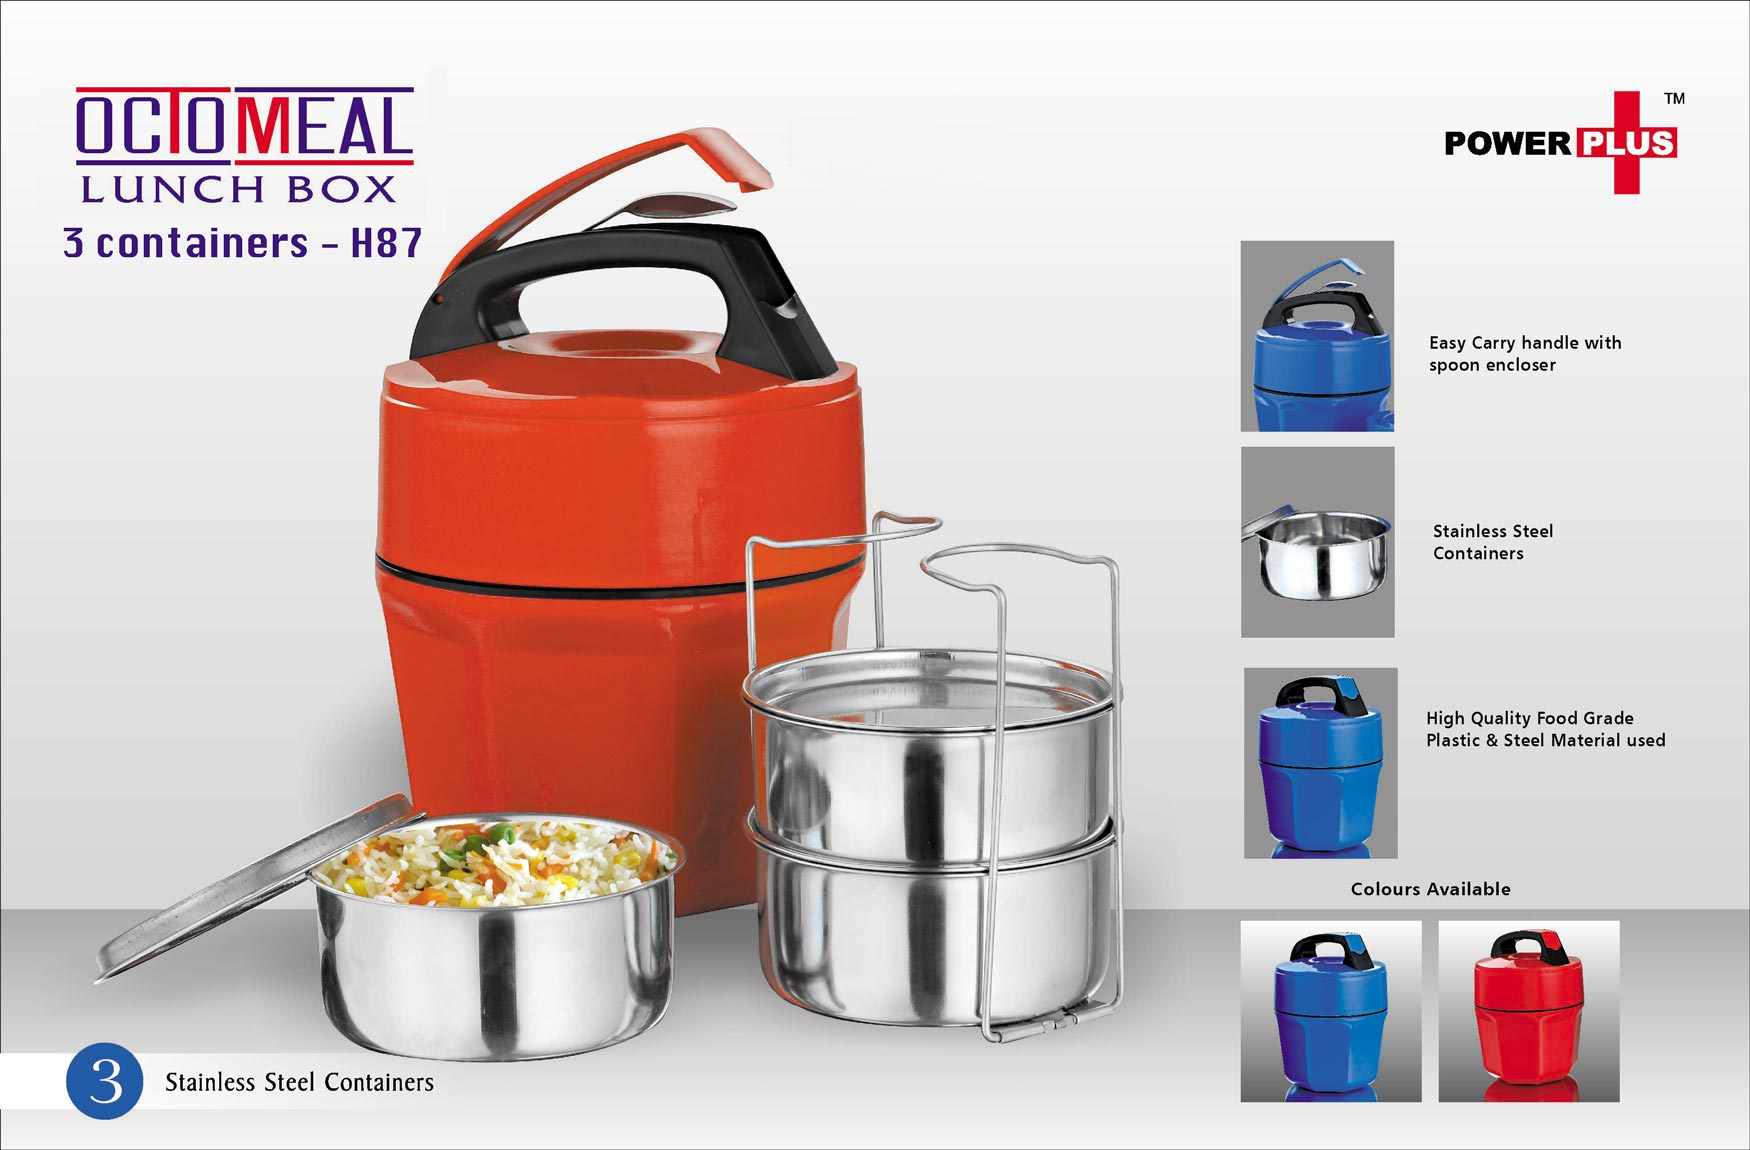 bee6d19df6a H87 - Power Plus Octomeal Lunch box - 3 containers (steel)